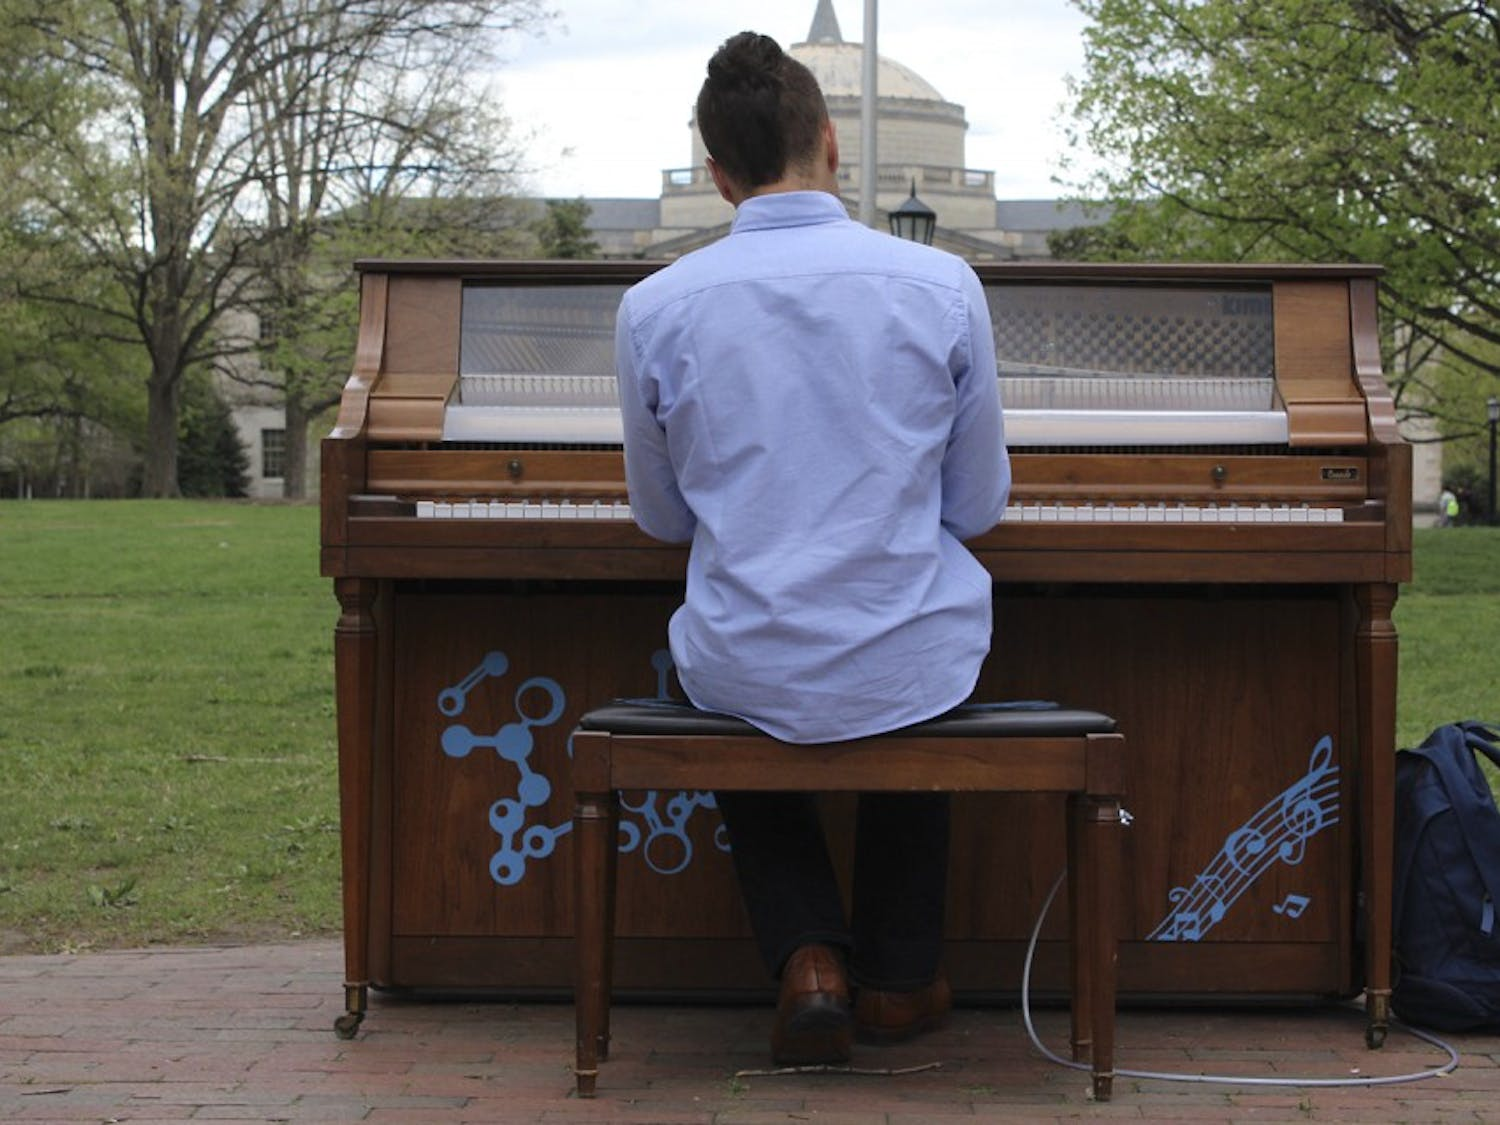 Arts Everywhere Day is hoping to have the arts represented all over campus with pianos, puppets and a Physics and Math Department sponsored pendulum.